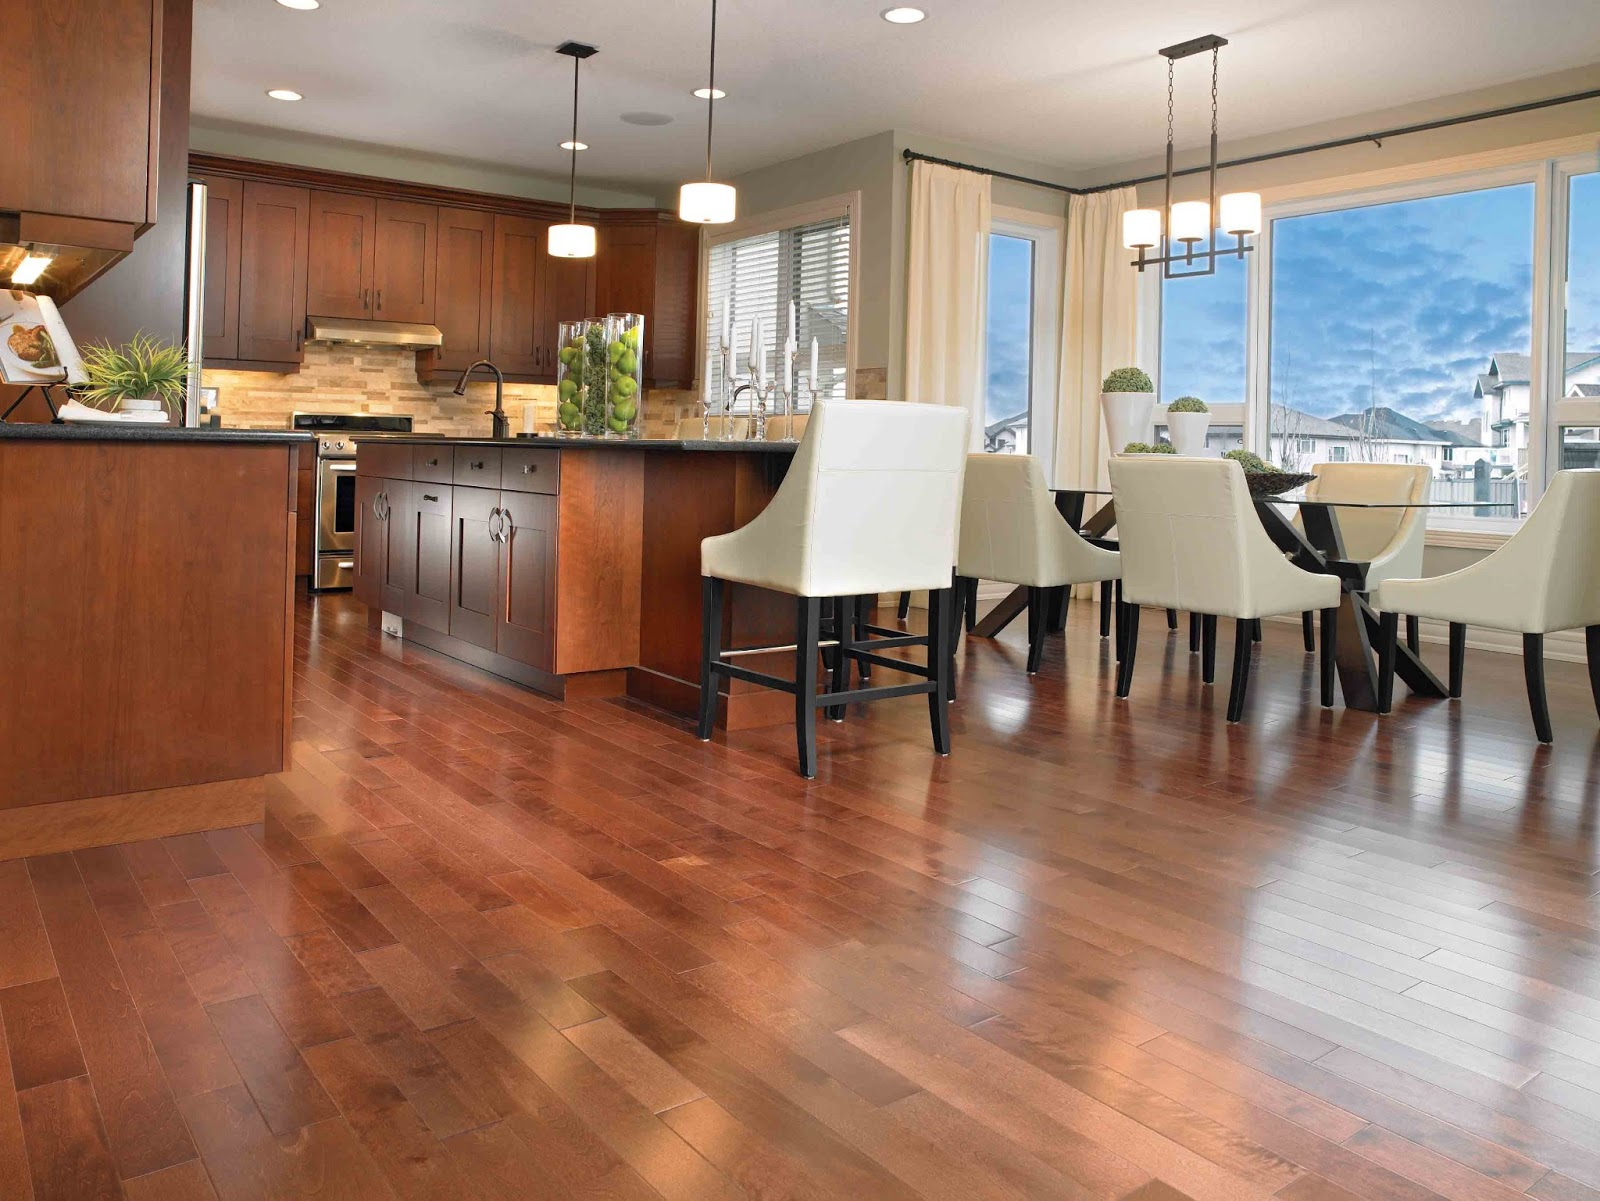 Kitchen Floor Covering Options The Leader In The Field Of Floor Coverings A Name Synonymous